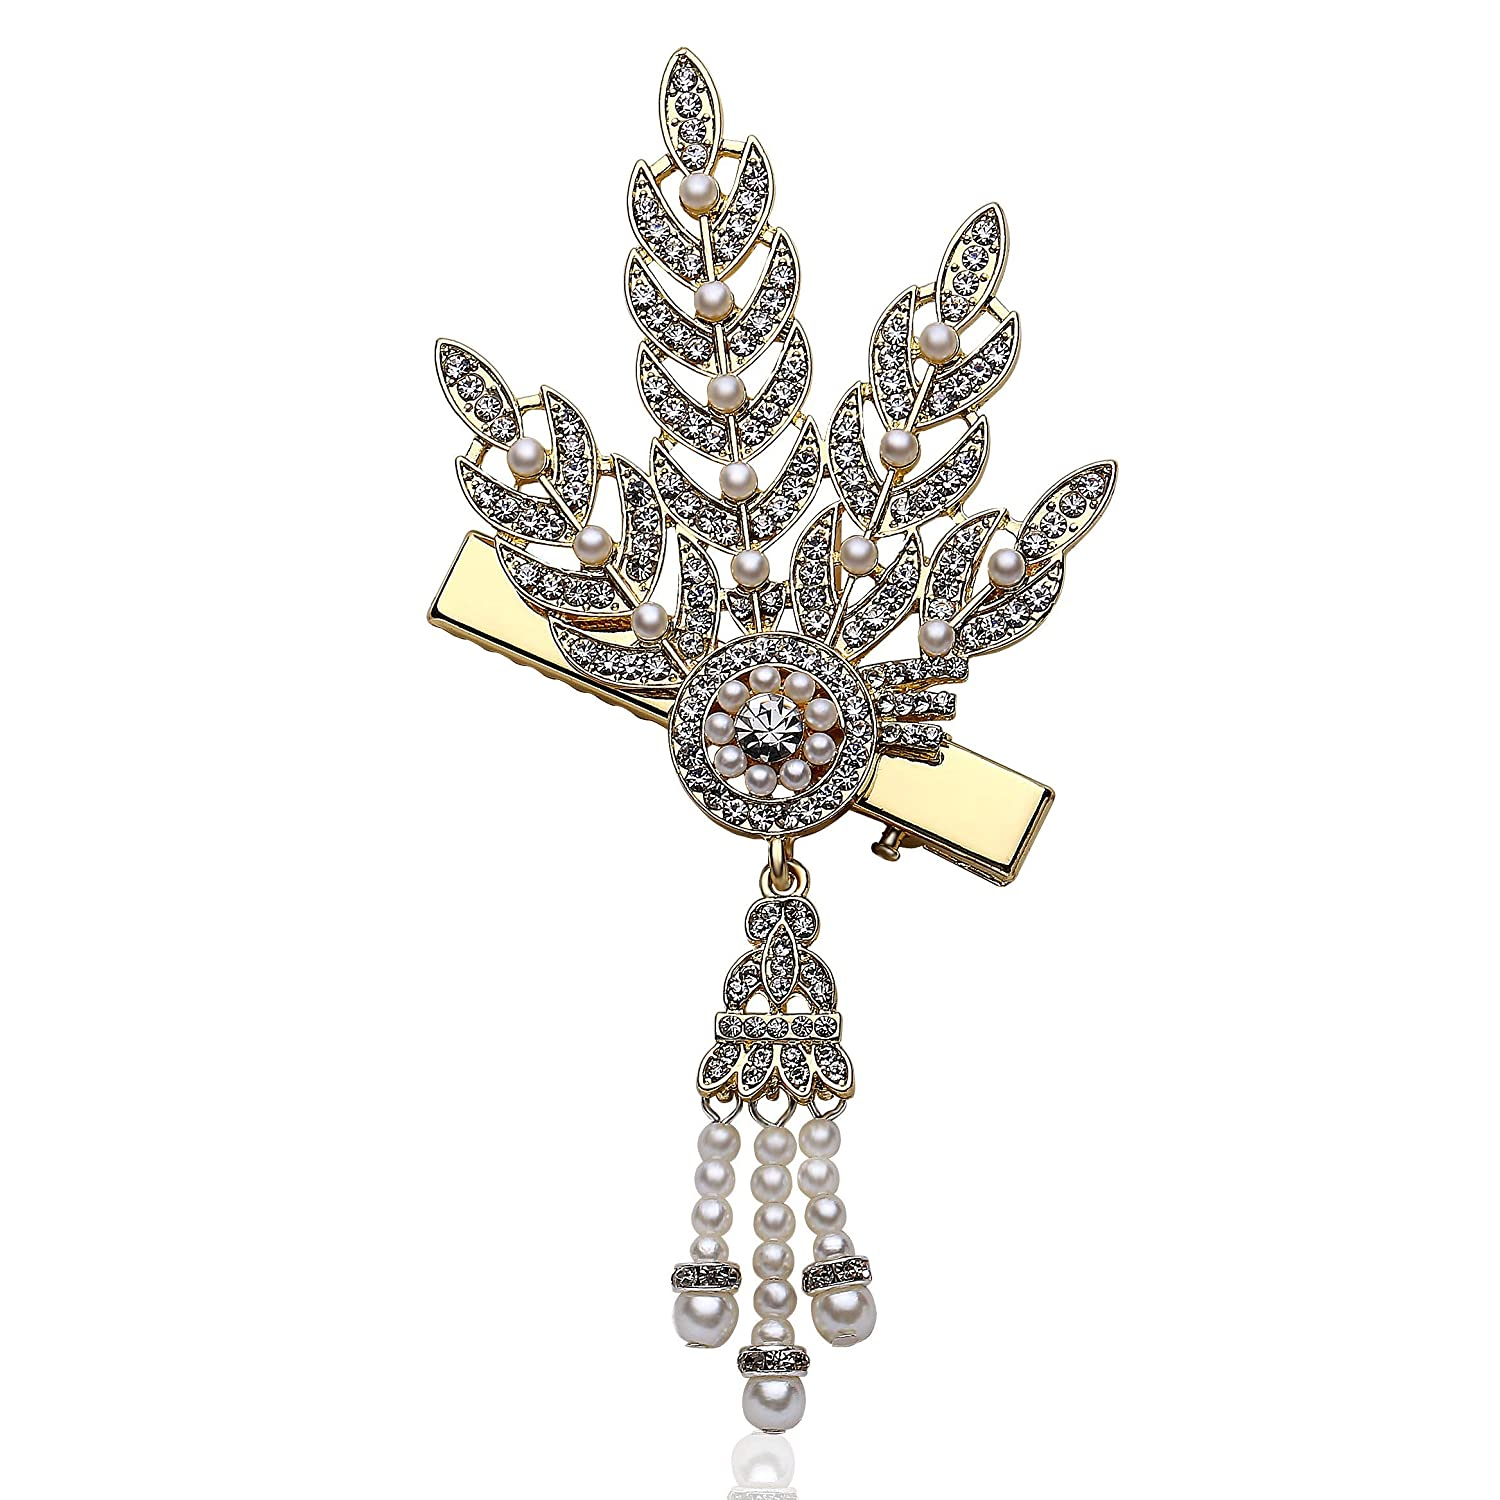 Coucoland 1920s Crystal Hair Pins Vintage Hair Pins Great Gatsby Headband Flapper Hair Clips Accessories